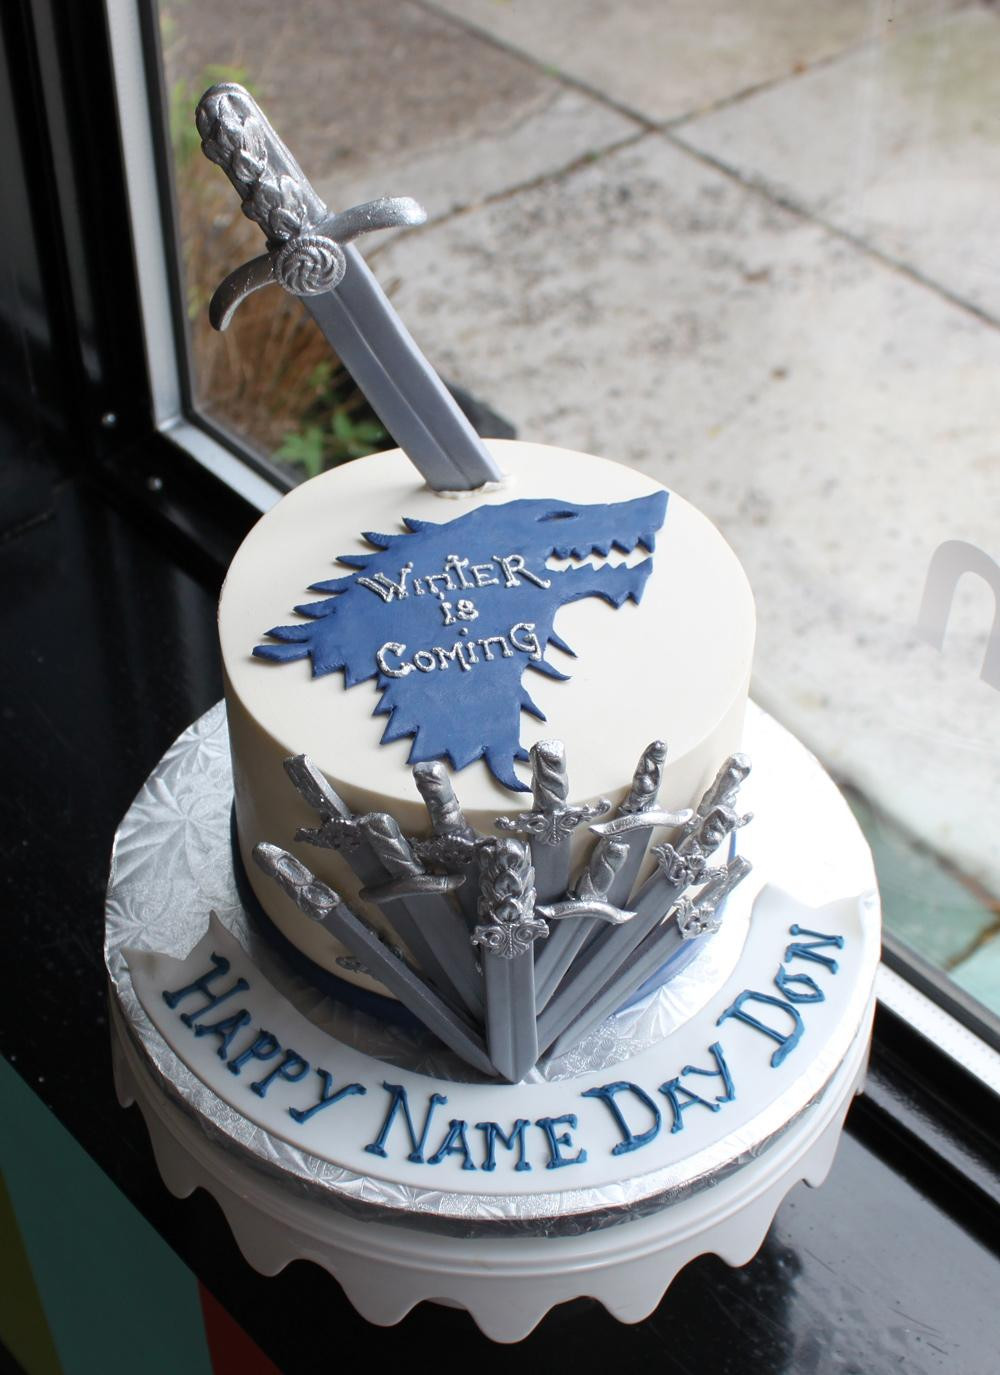 Best ideas about Game Of Thrones Birthday Cake . Save or Pin Game of Thrones Cake Designs Now.